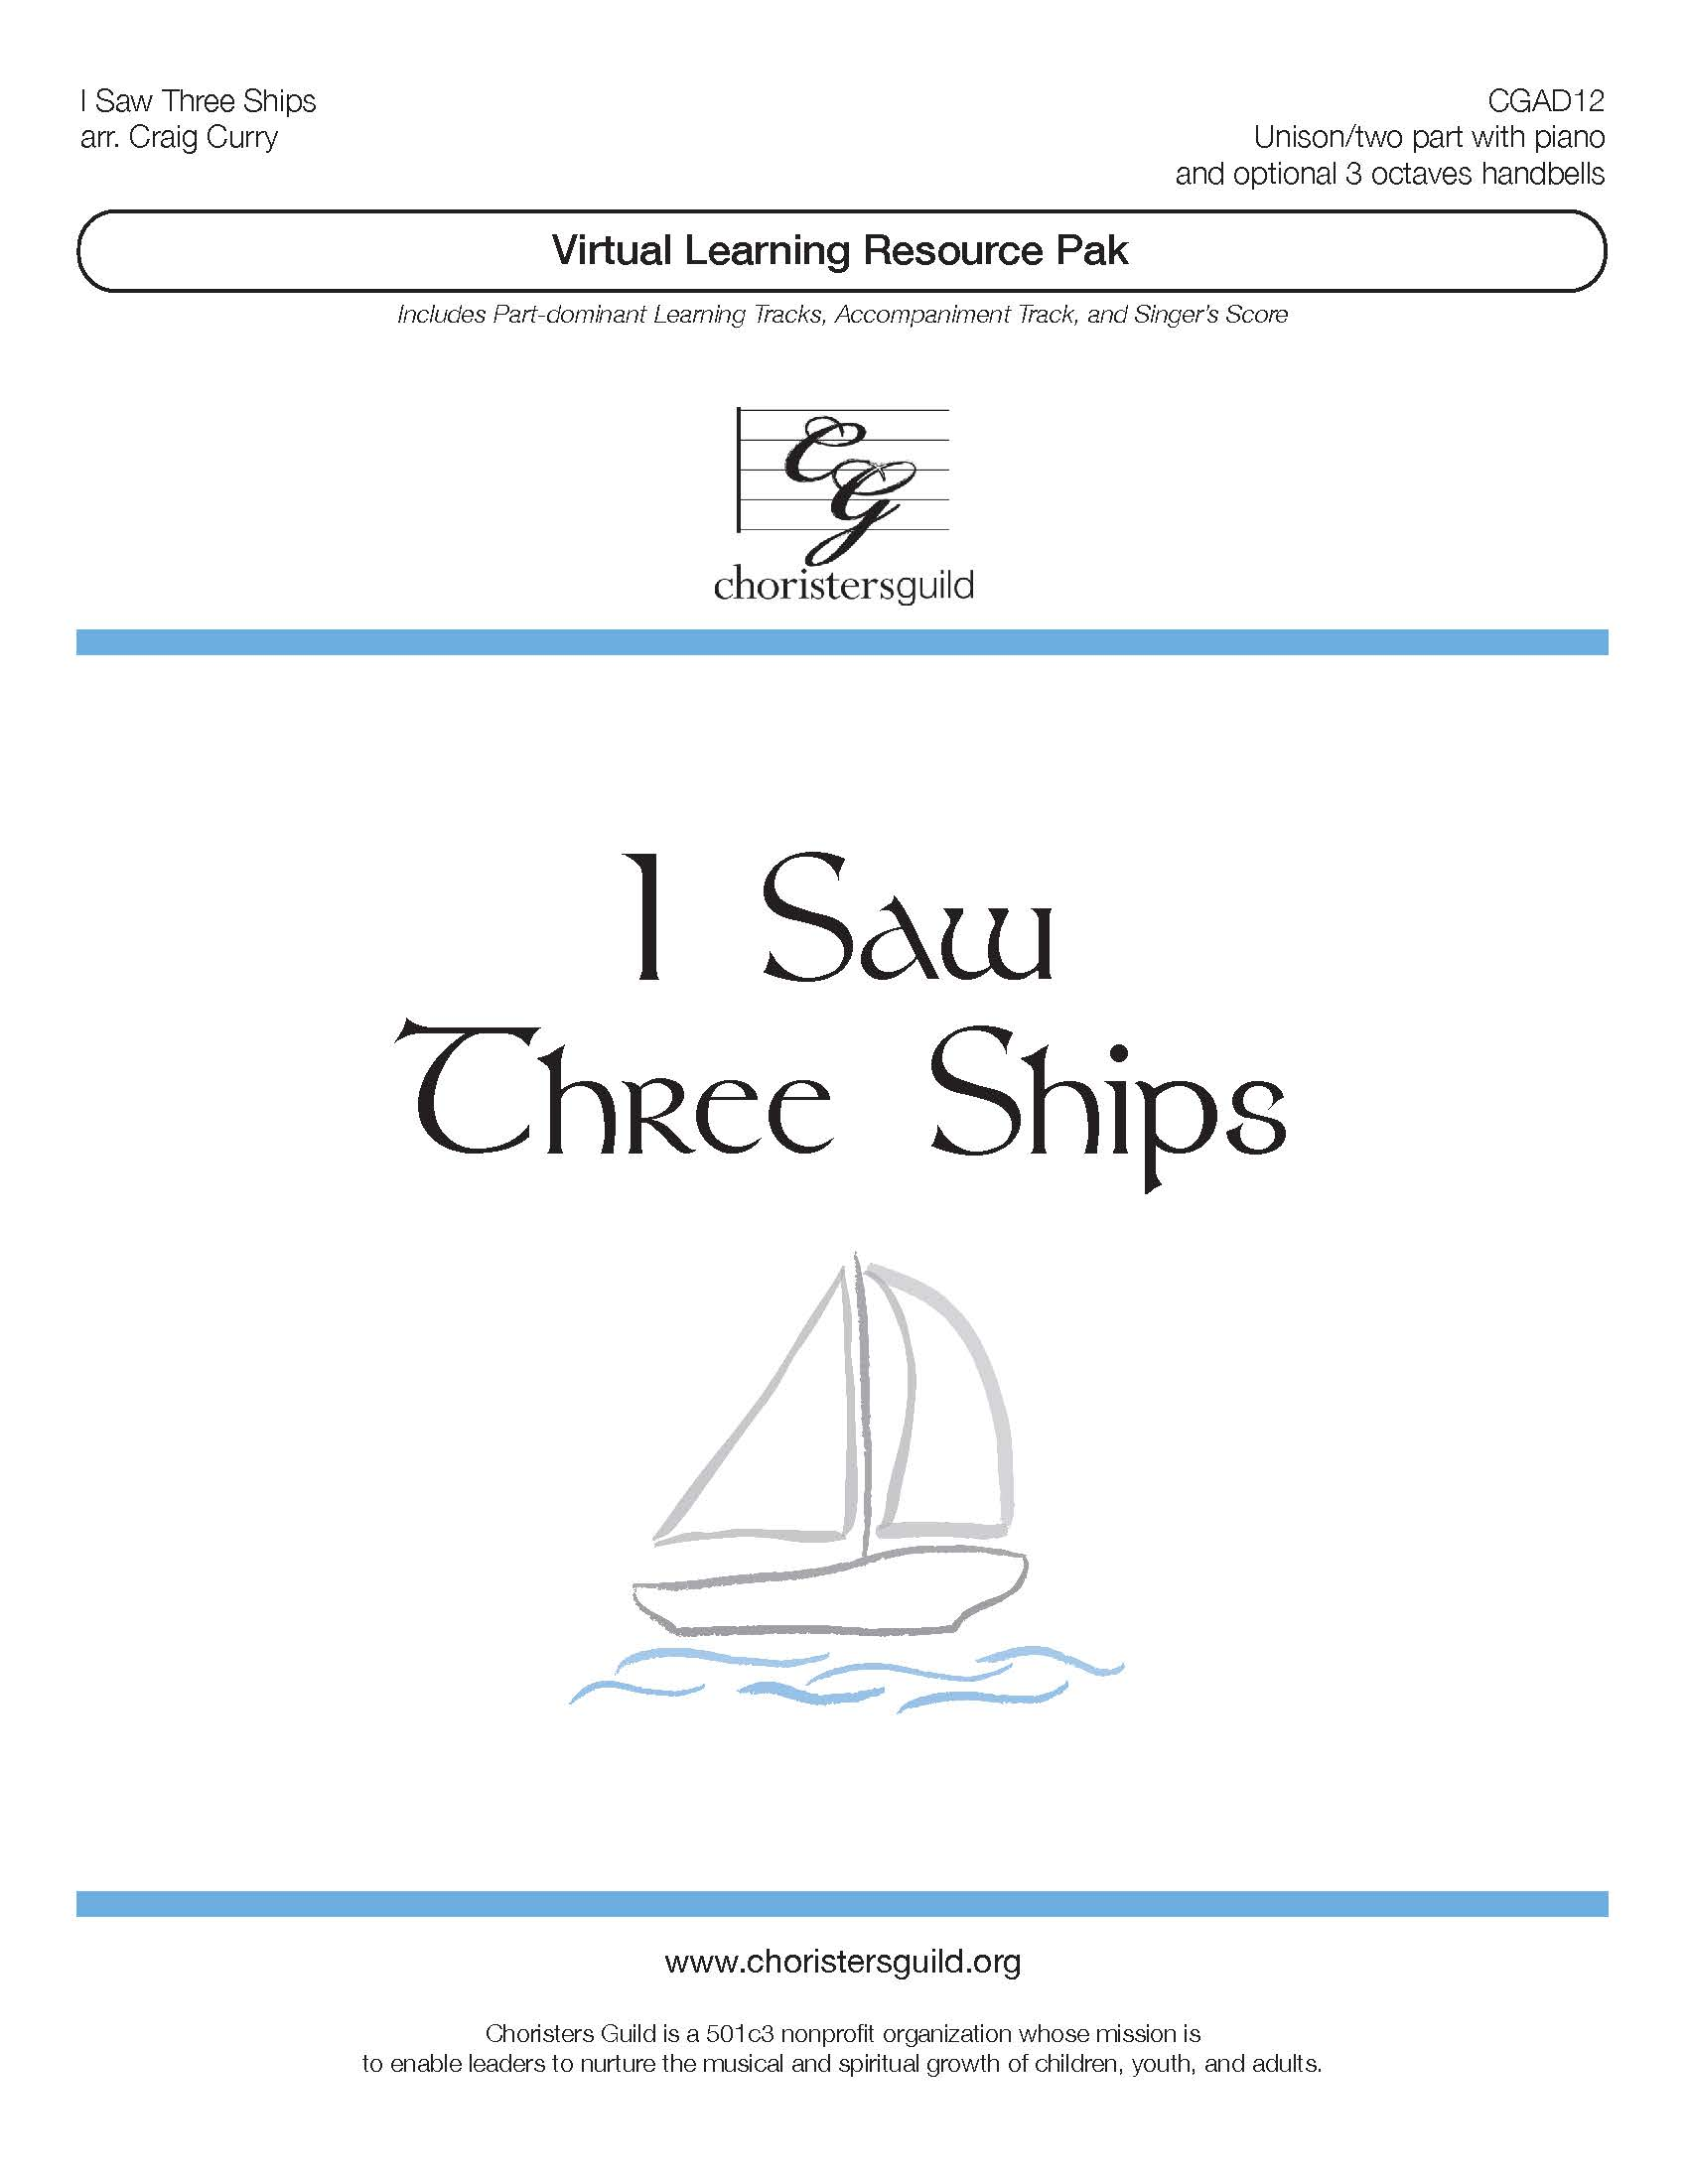 I Saw Three Ships (Virtual Learning Resource Pak) - Two-part